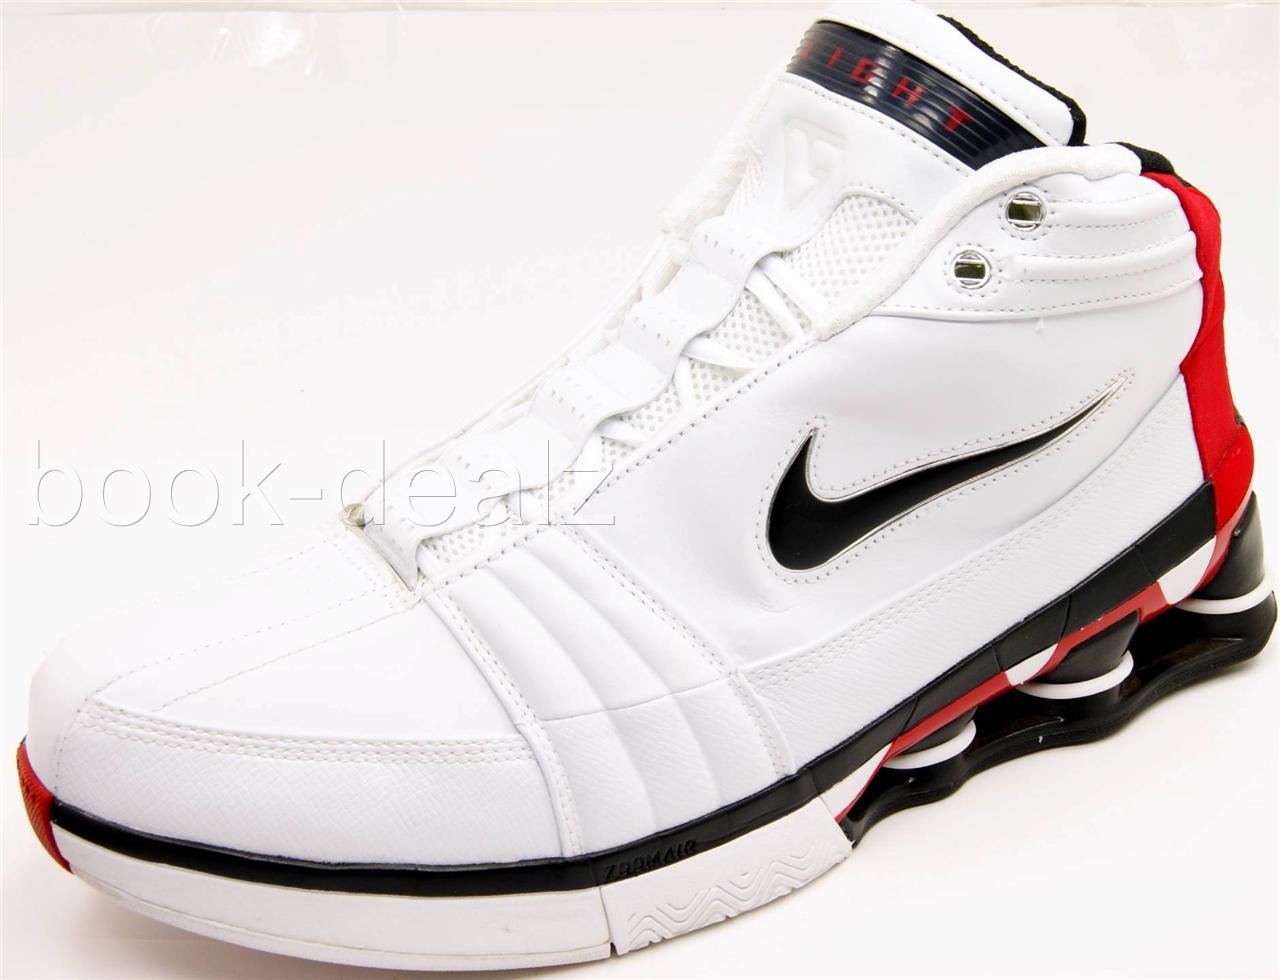 Vince Carter Shoes For Sale